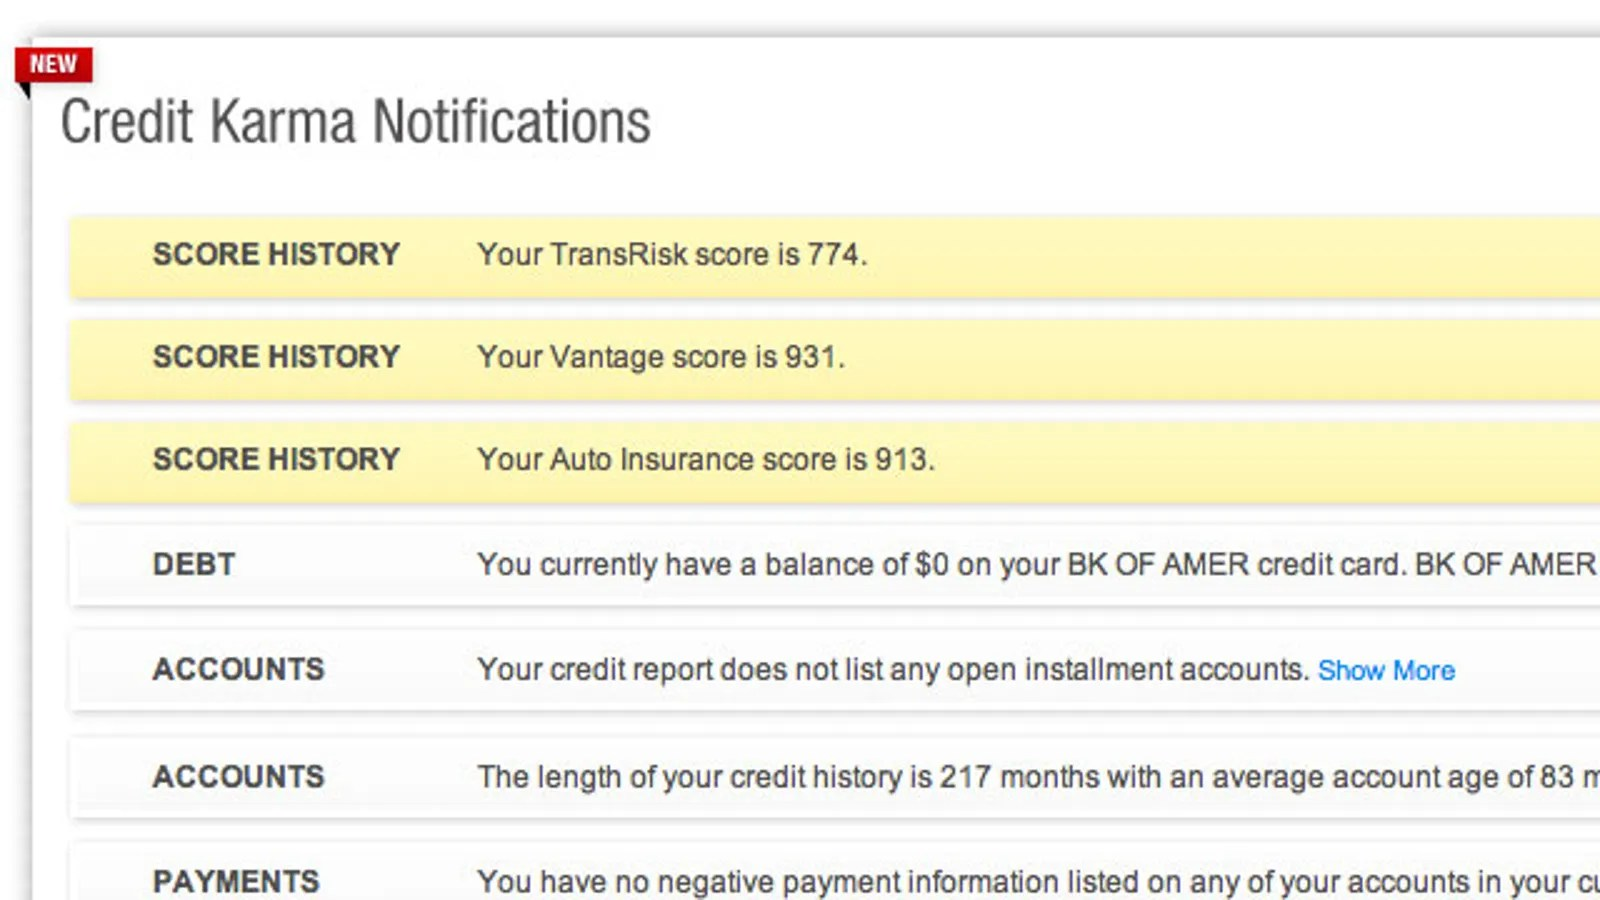 Credit Karma Credit Karma Now Offers Free Credit Monitoring To Prevent